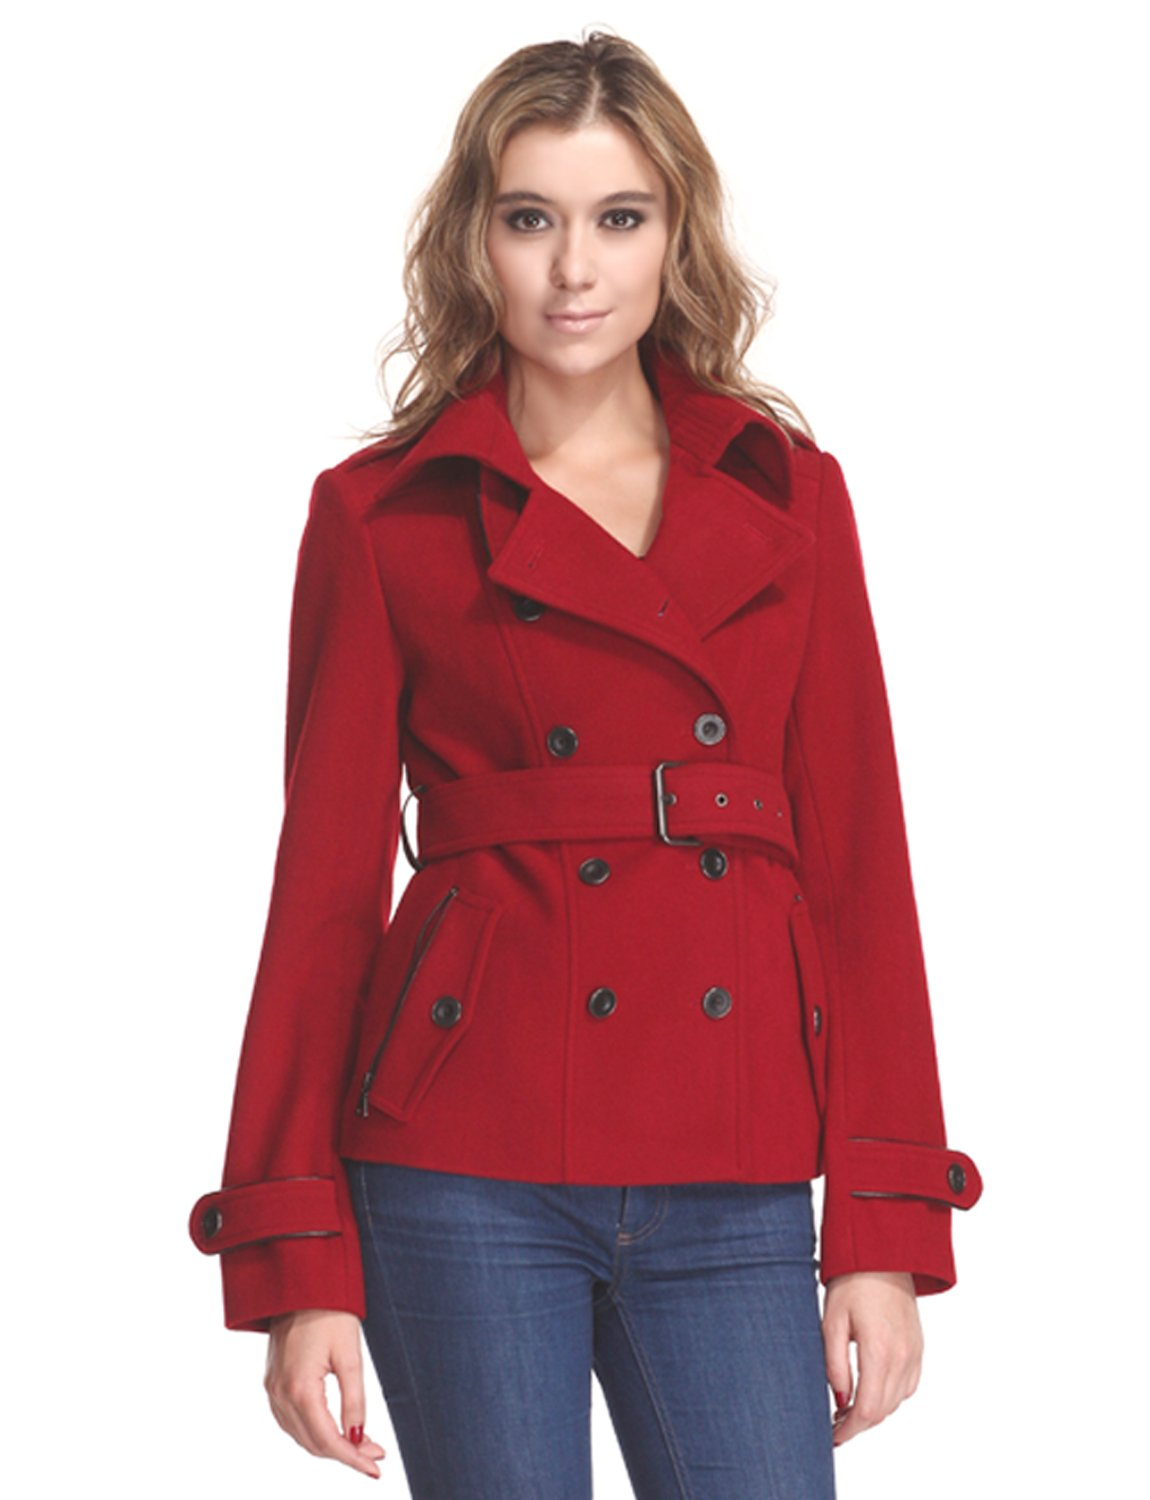 Zareen Women's Short Wool Blend Coat With Trench Style (Large, Red)